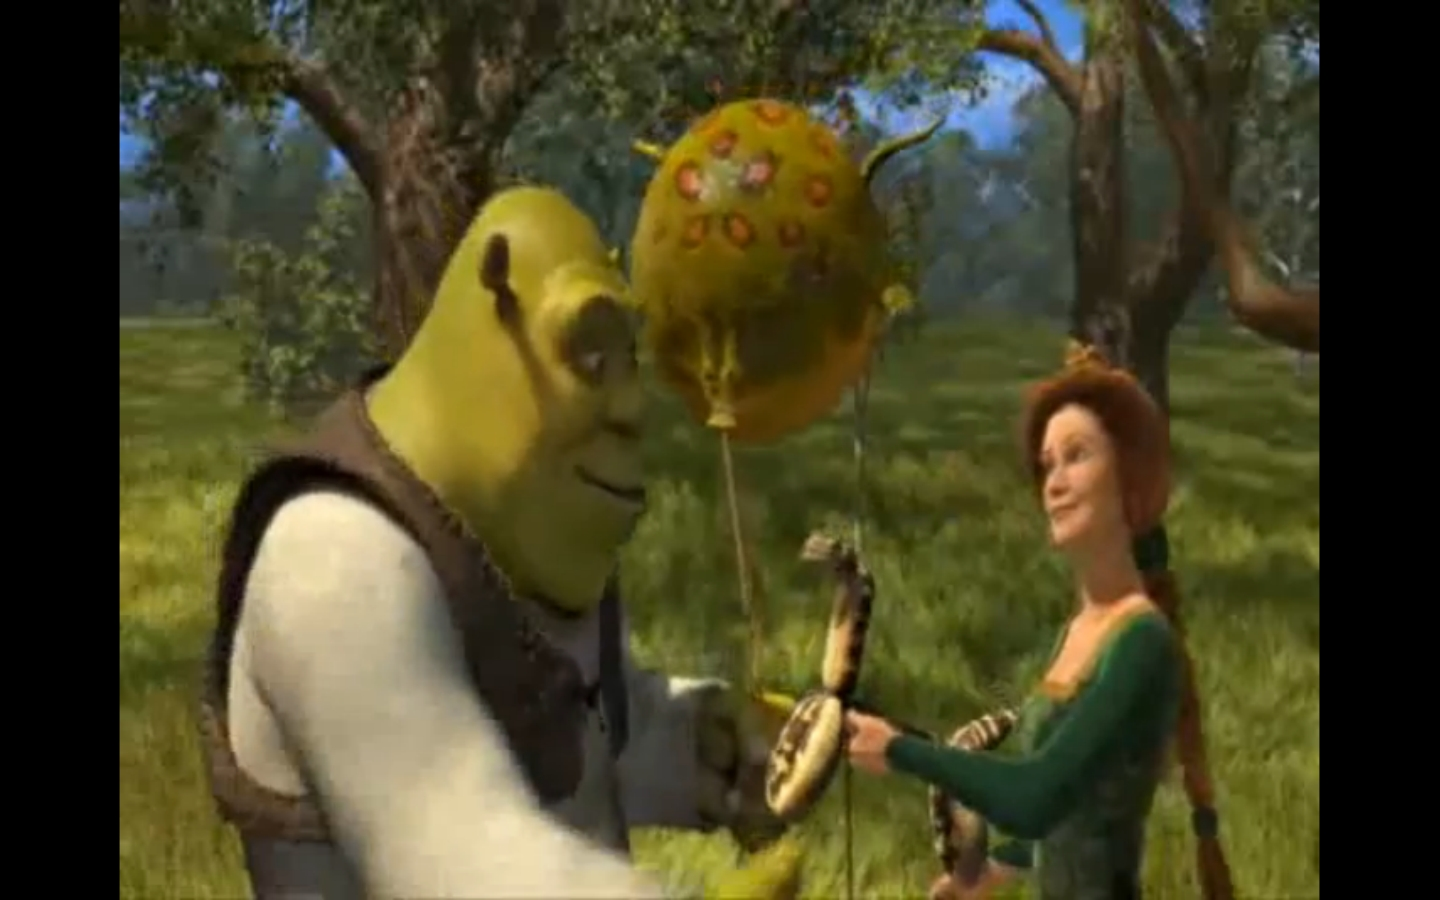 Shrek & fiona carton caertaure sexy videos